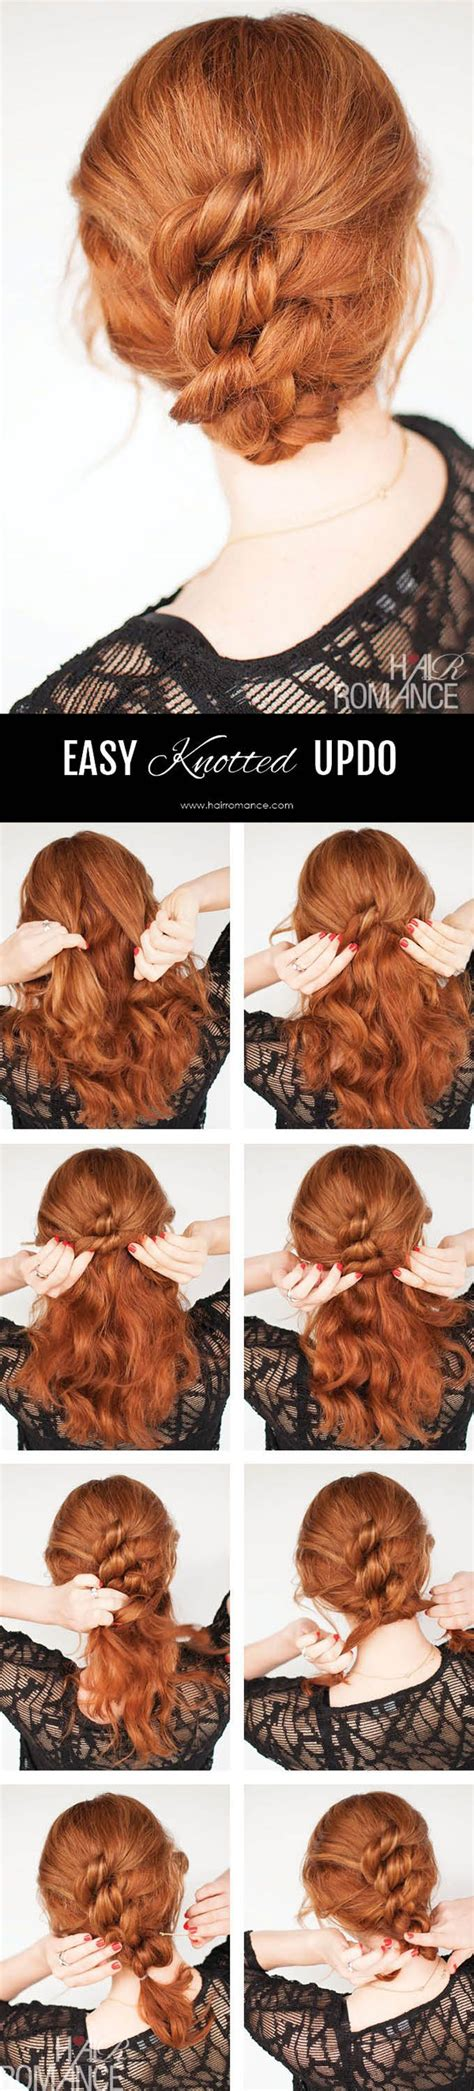 Hairstyle Tutorials For Hair by 10 Easy Hairstyle Tutorials For Hair Beep